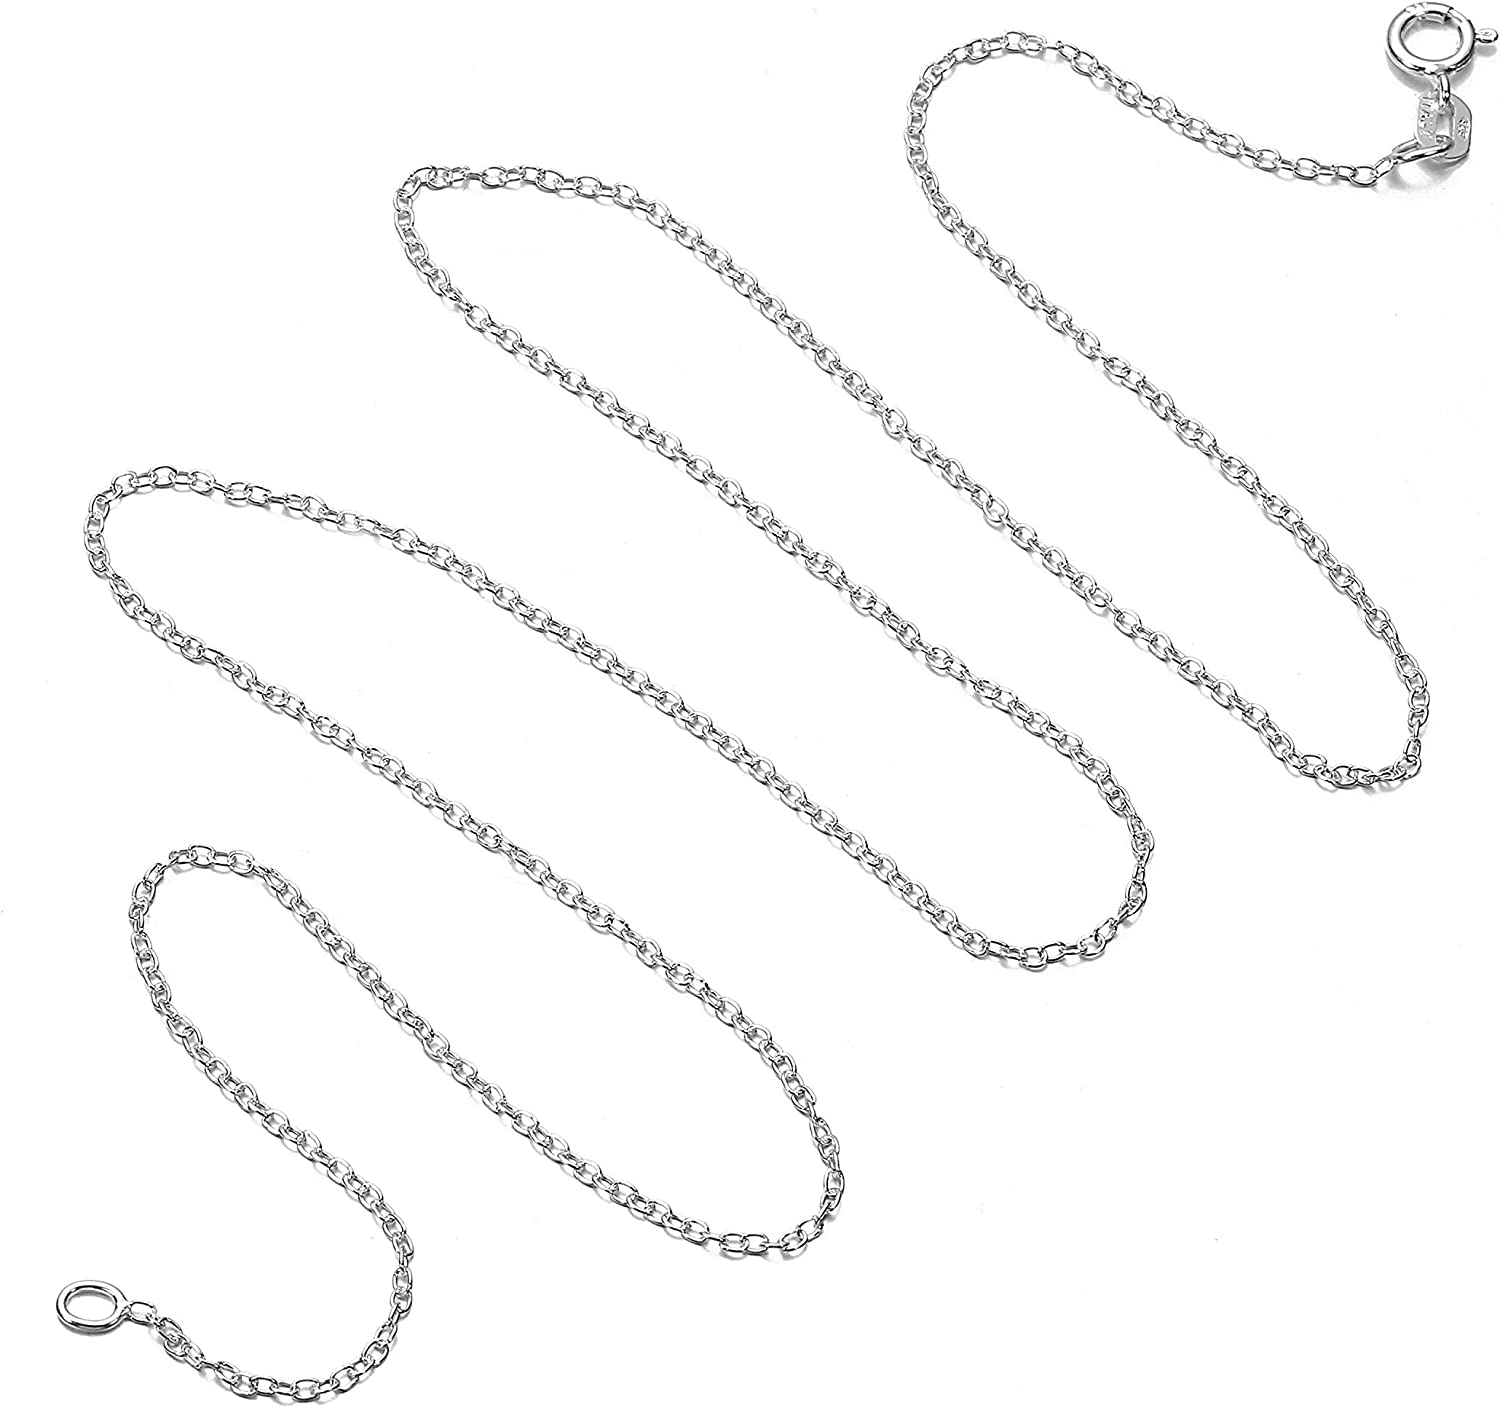 Cable Chain Necklace Sterling Silver Italian 1.3mm Rhodium Plated Nickel Free 18 inch